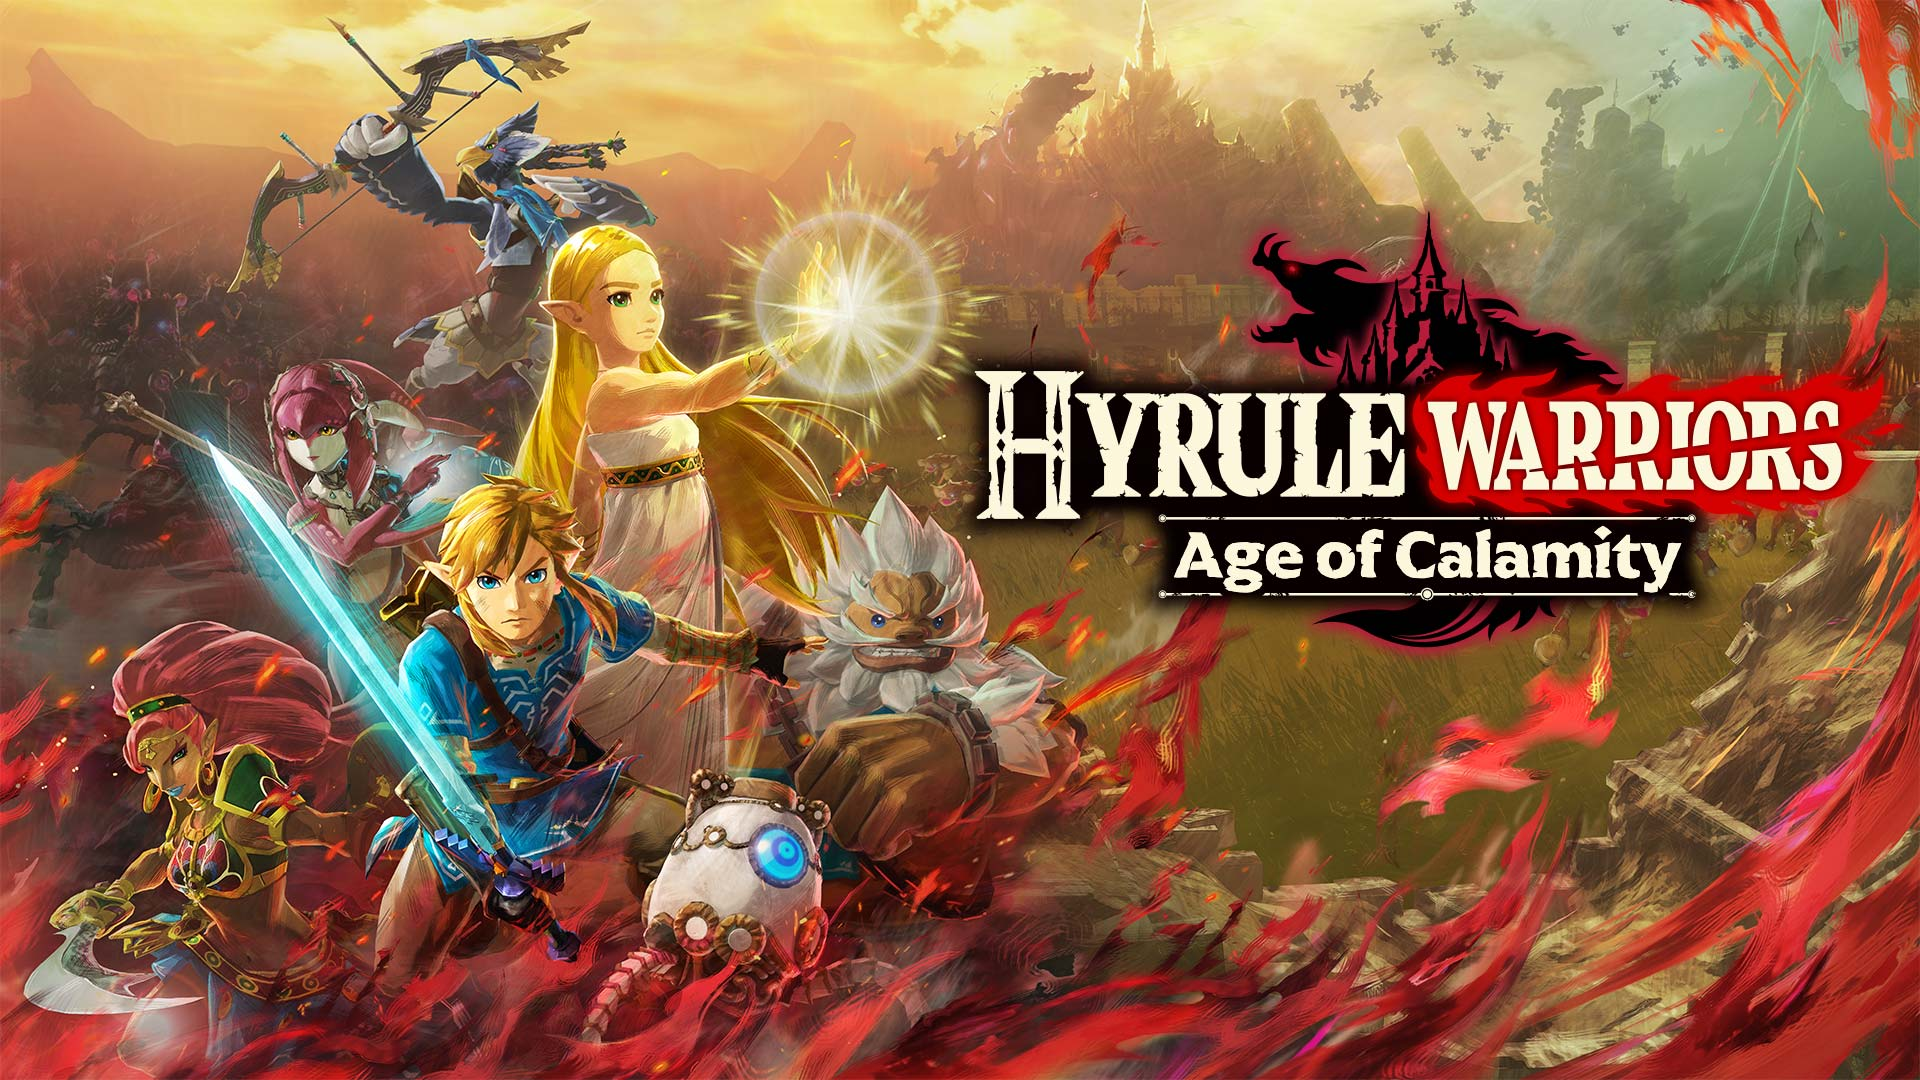 hyrule warriors age of calamity artwork